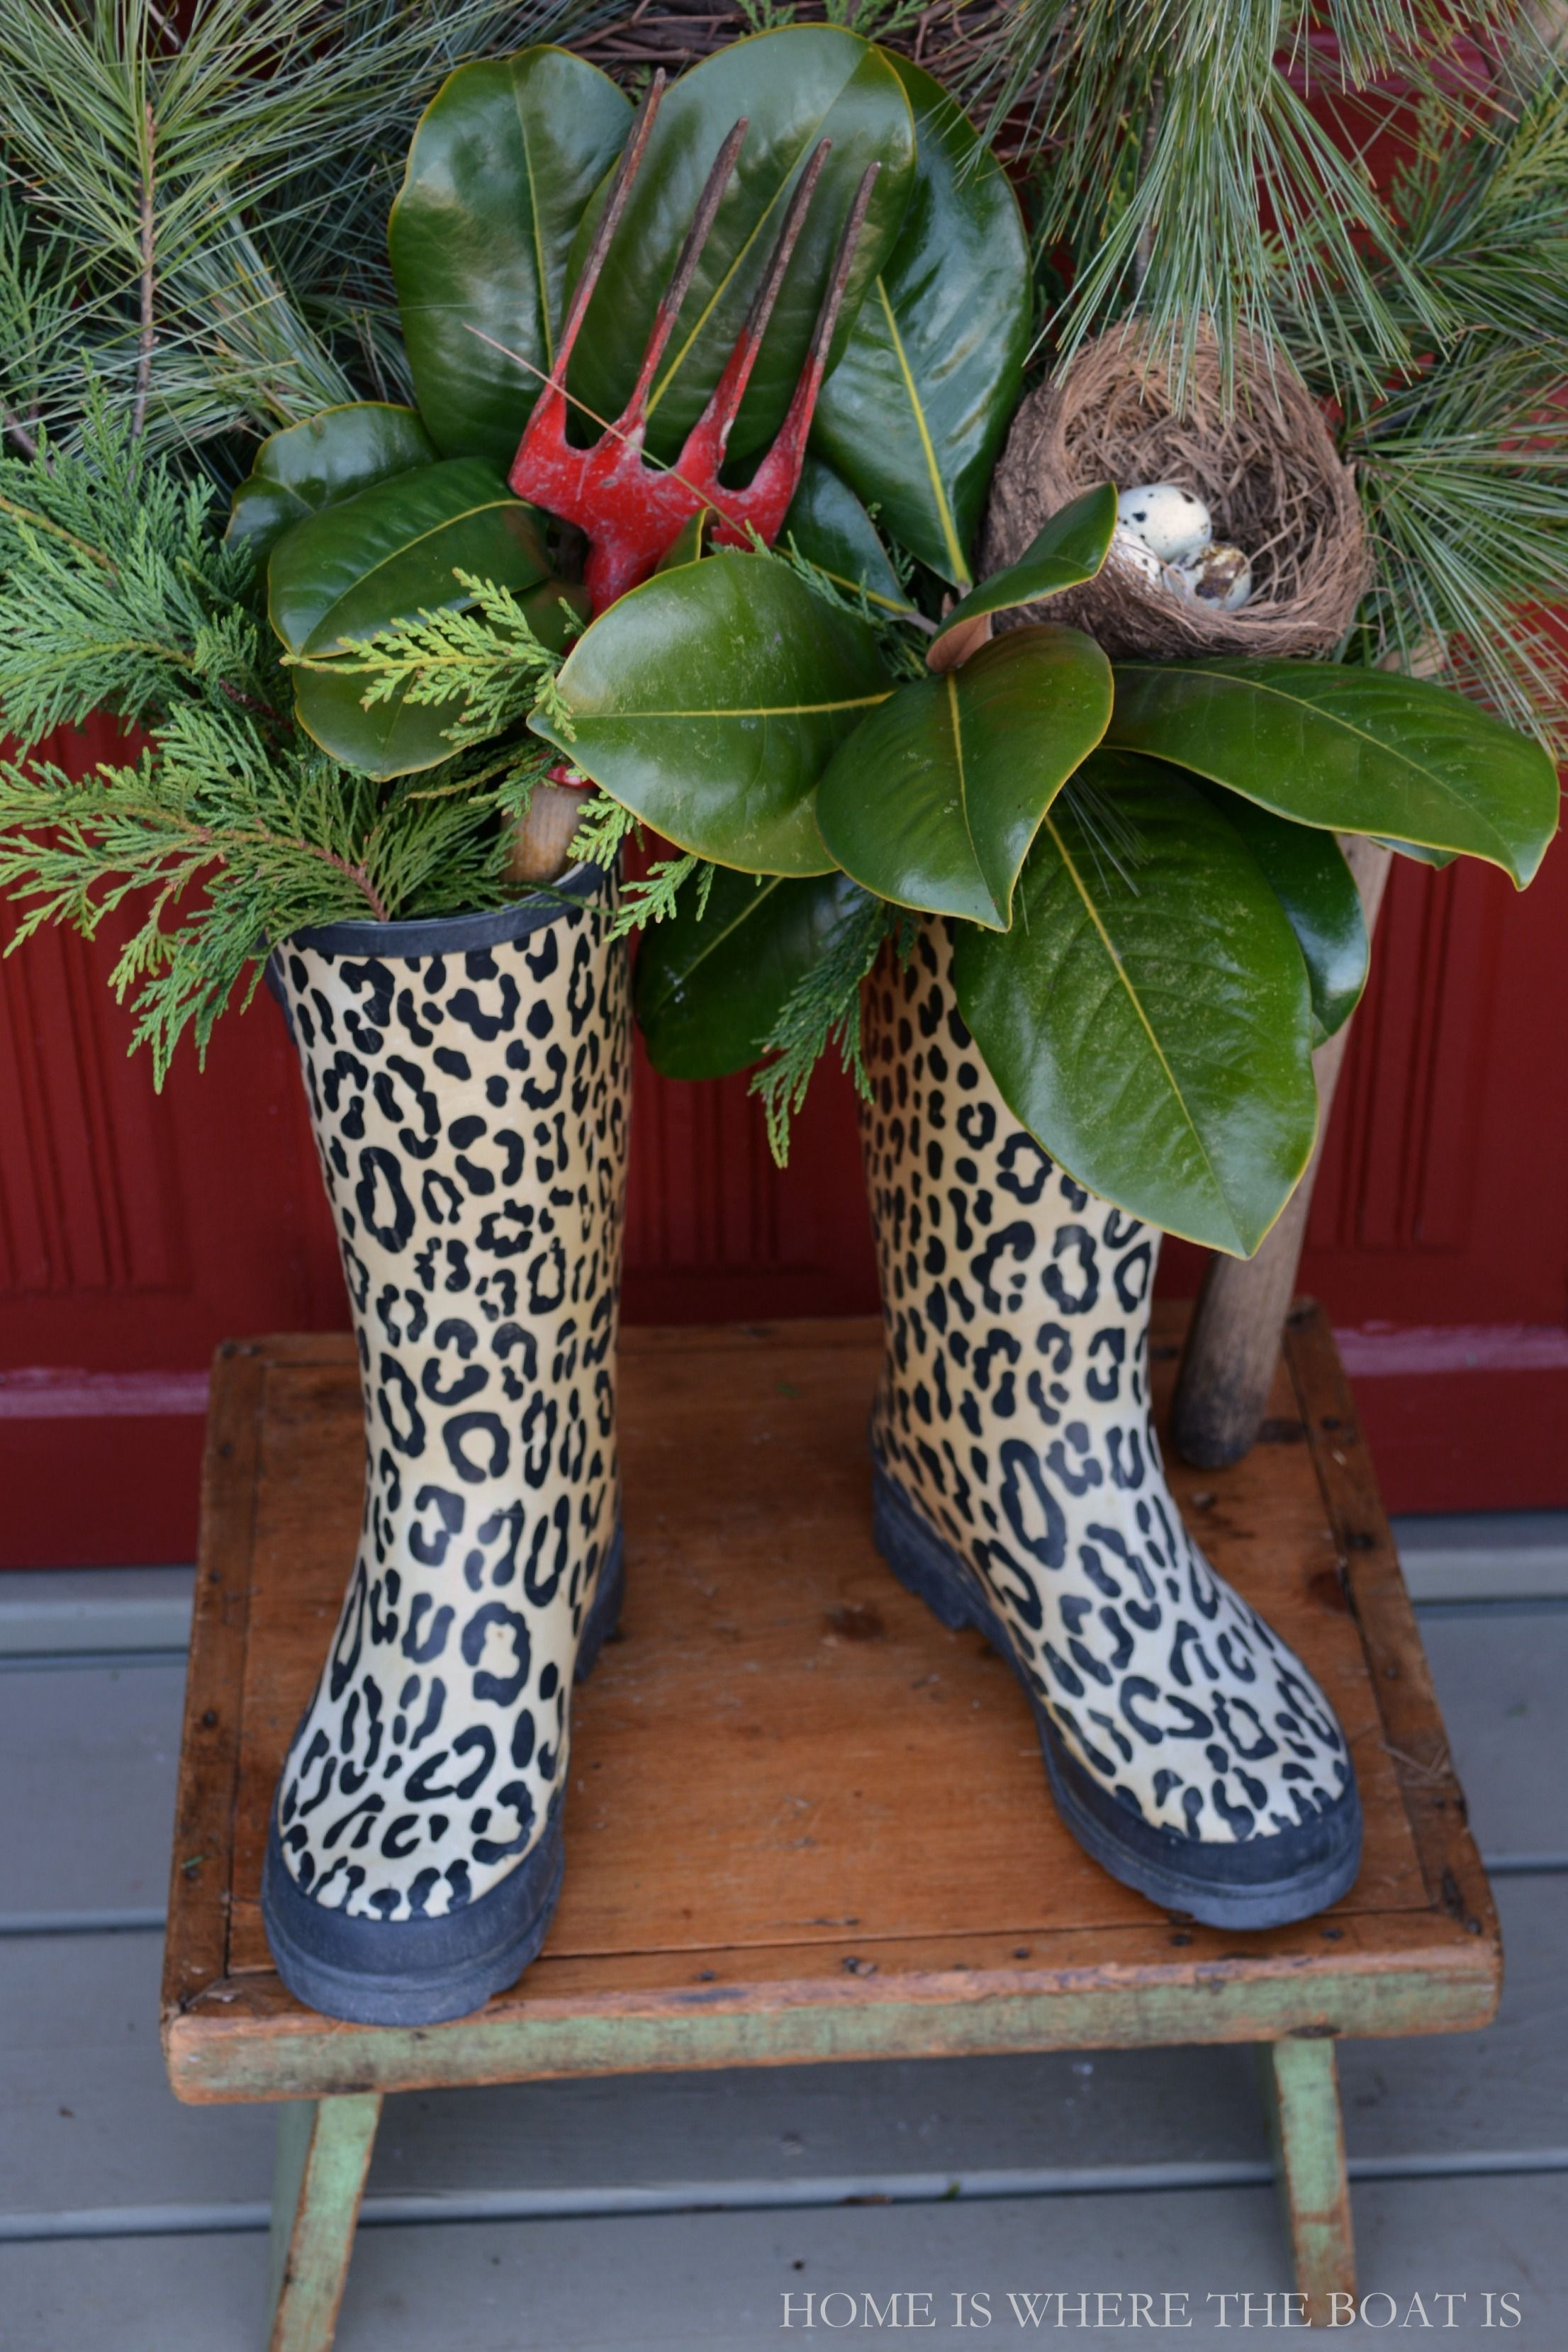 wellies with winter greenery garden fork and bird nest home is